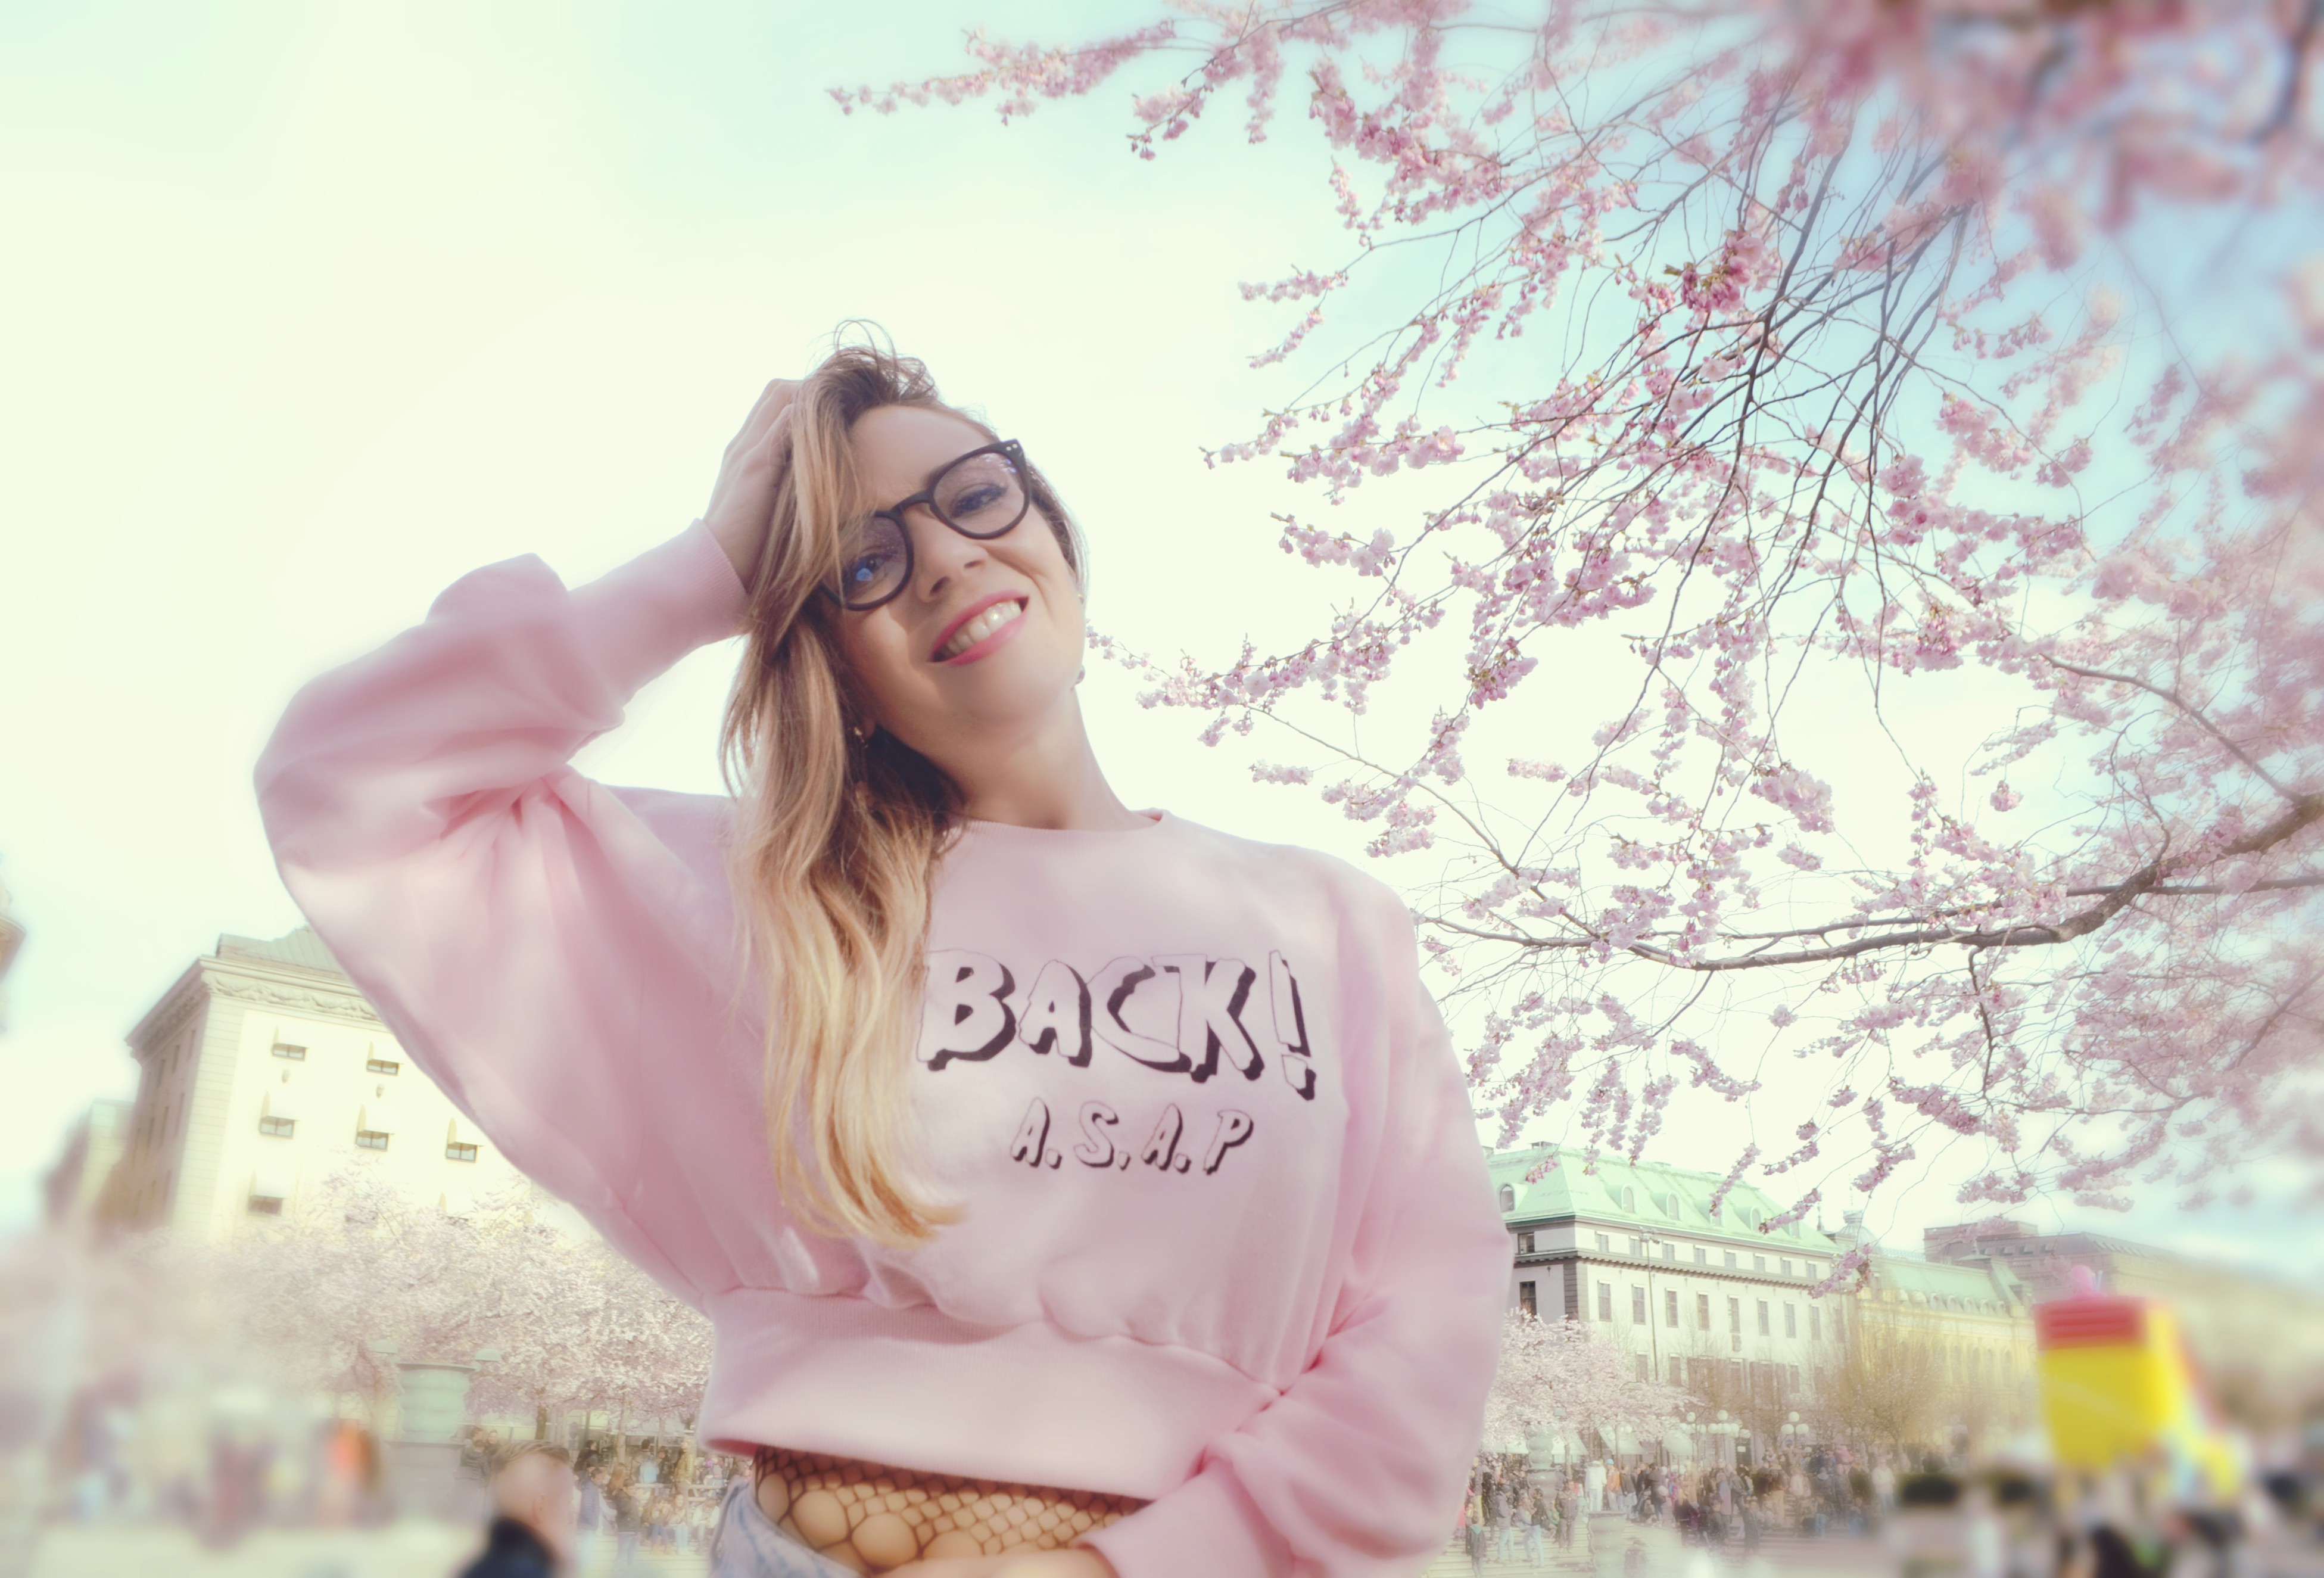 Blog-de-moda-the-90s-look-blog-de-viajes-ChicAdicta-influencer-Chic-Adicta-primavera-en-Estocolmo-fashionista-PiensaenChic-Piensa-en-Chic